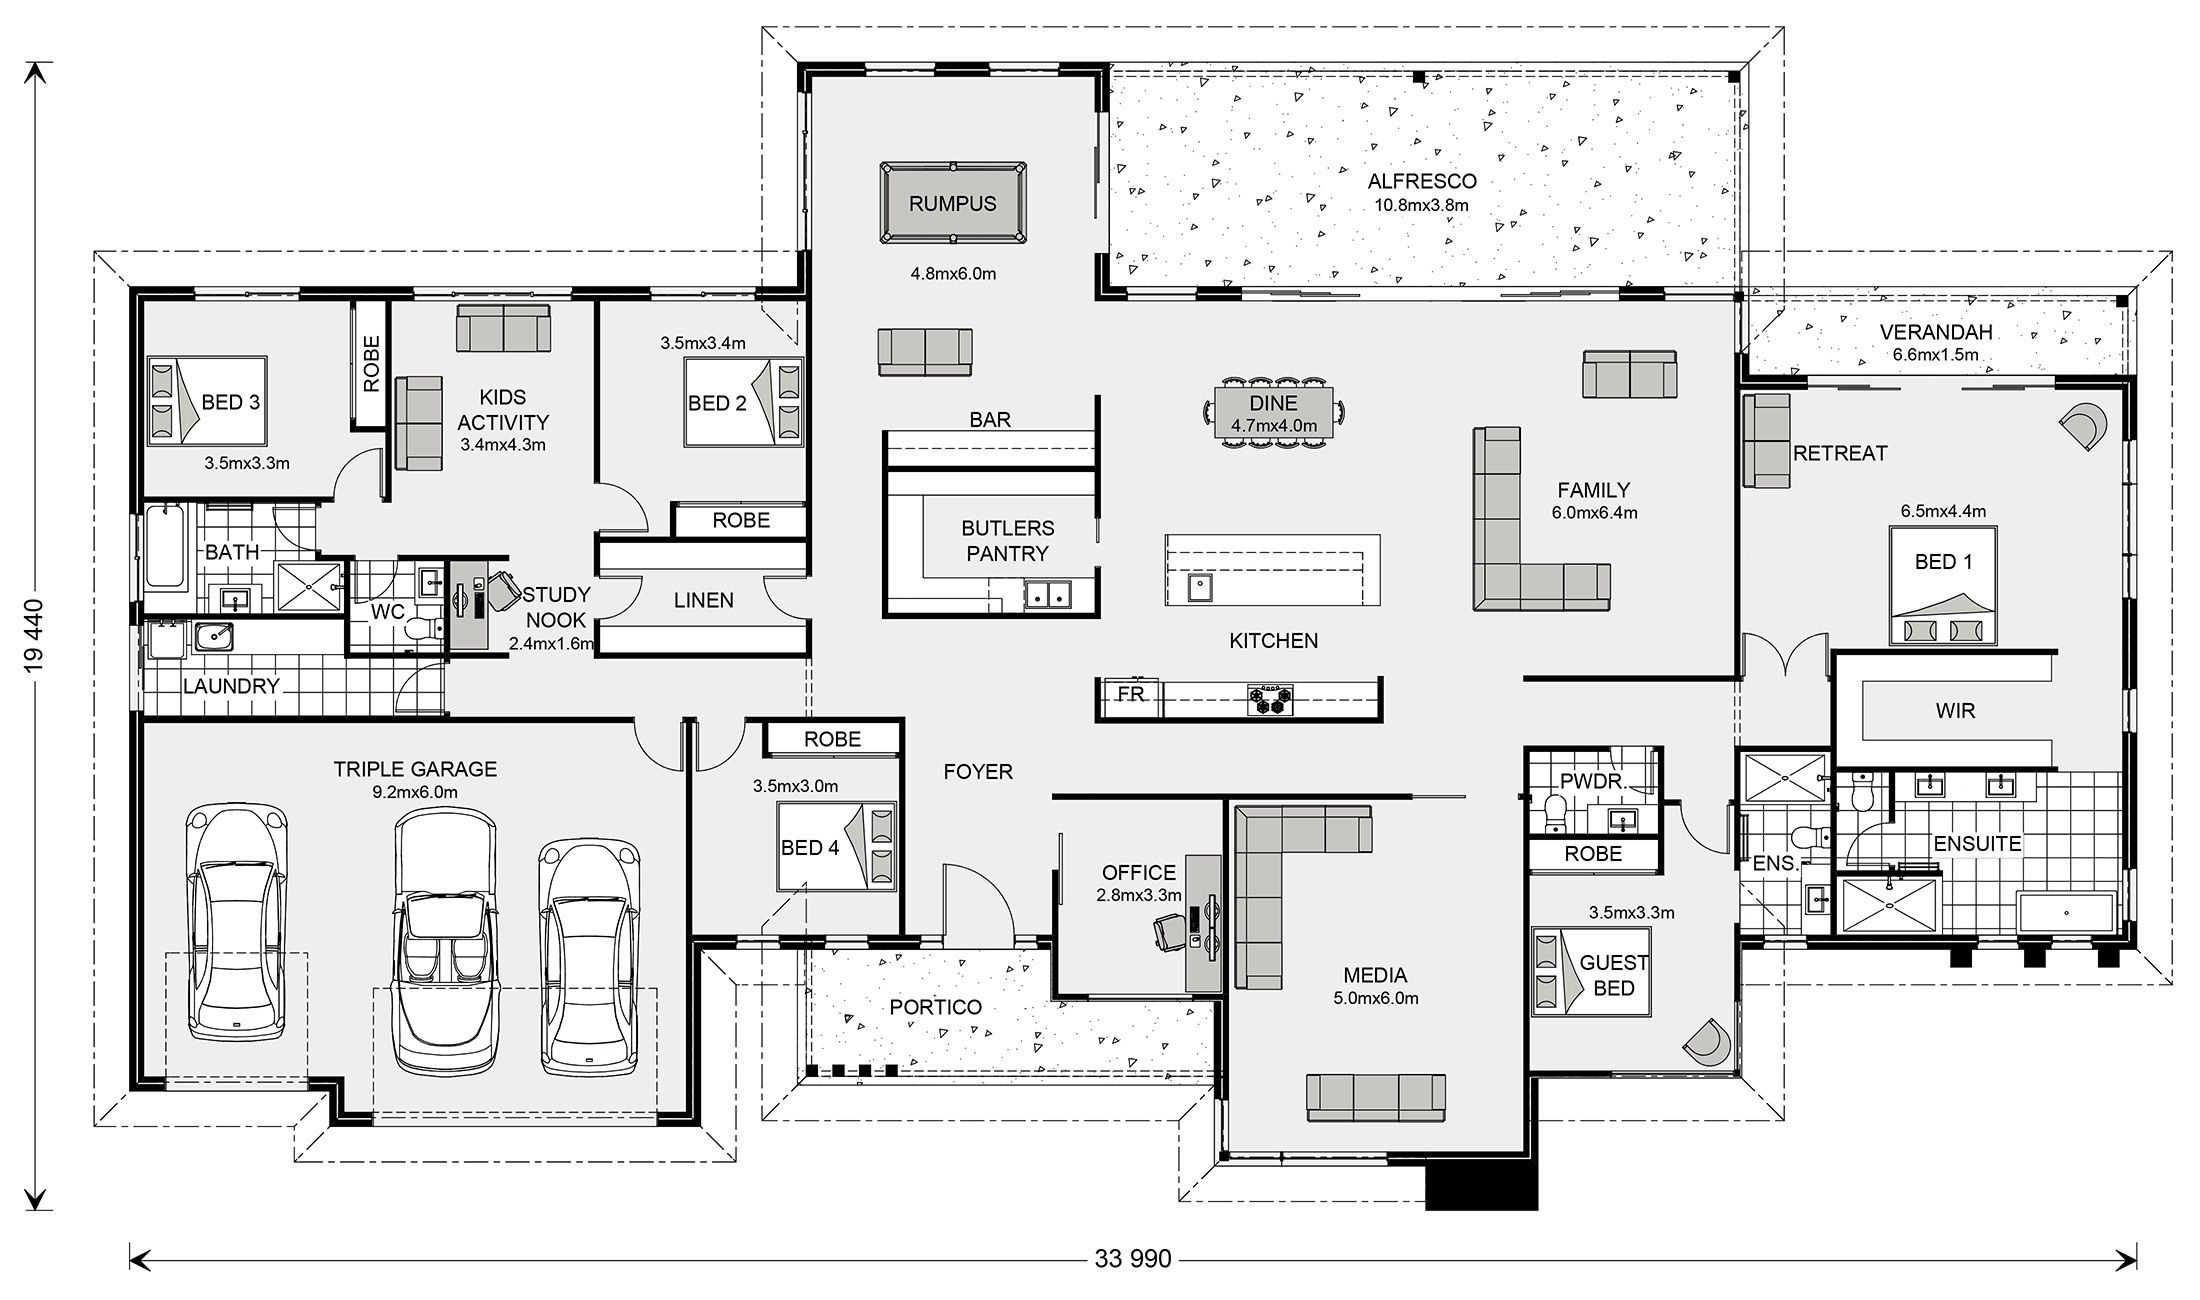 Somerset 513, Home Designs in New South Wales | G.J. Gardner Homes on signs designs, beehive plans and designs, box house designs, luxury pool house designs, food designs, cat house designs, bird designs,